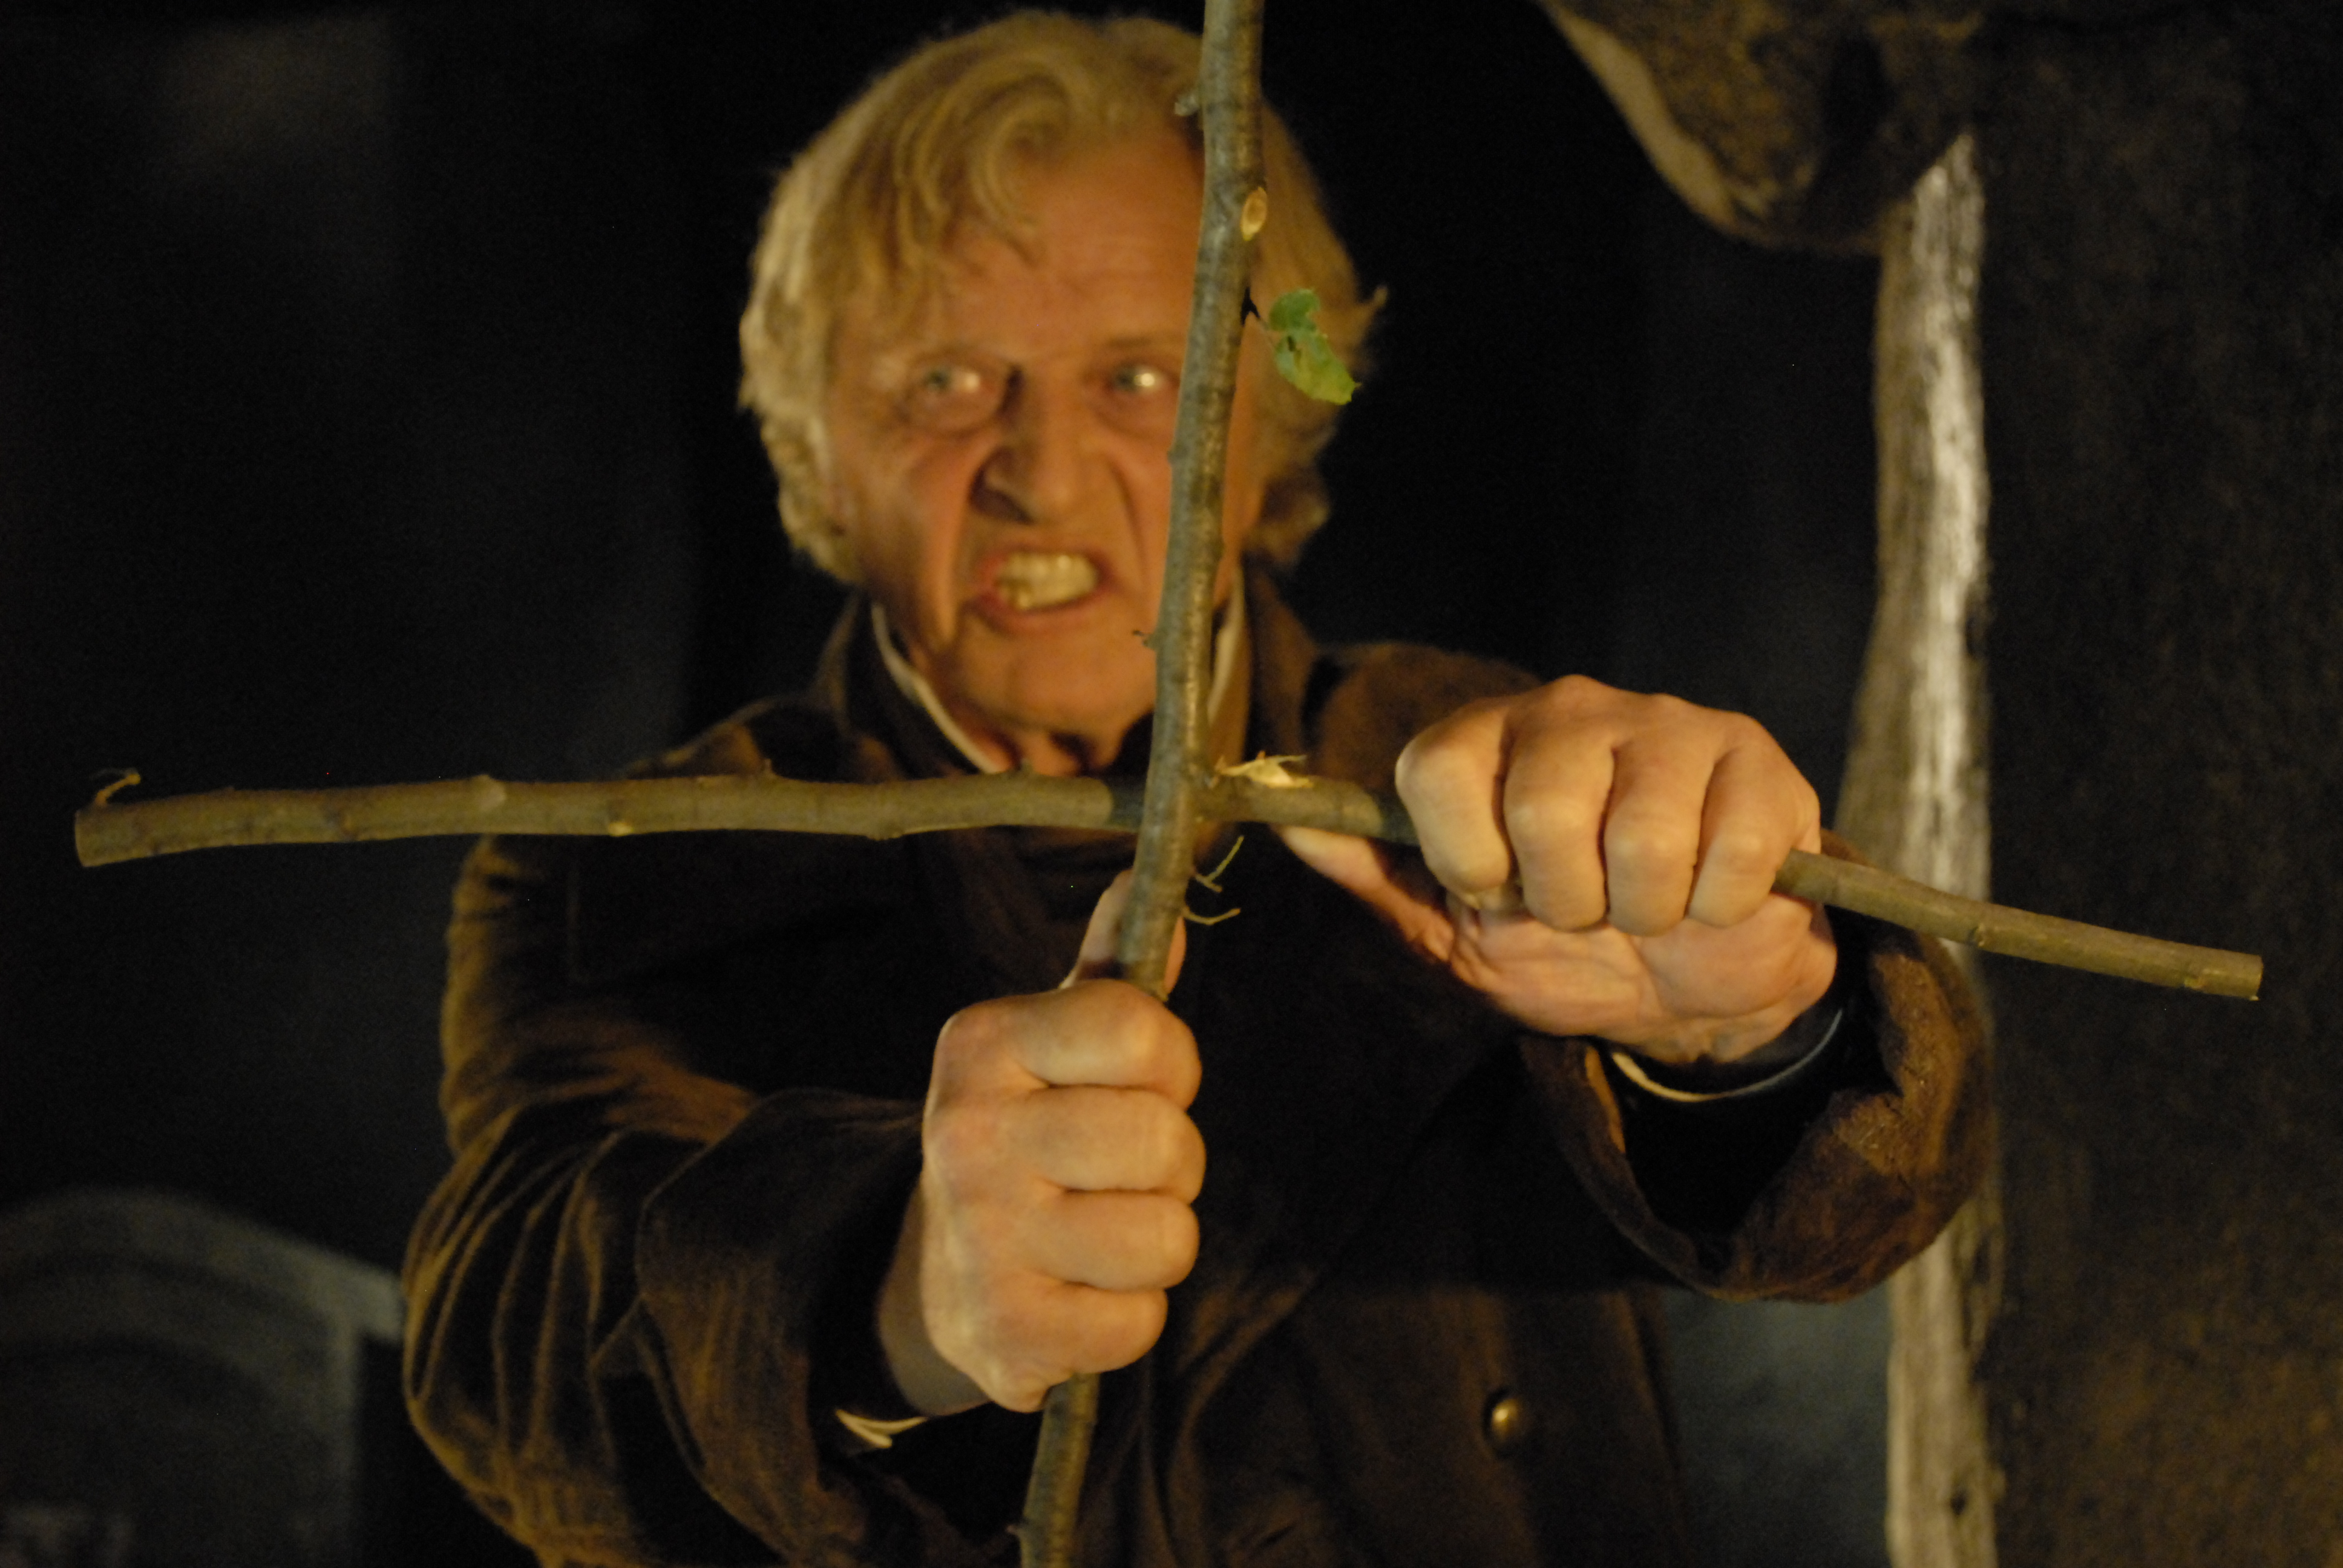 8. RUTGER HAUER HAS A CROSS TO BEAR AS THE VAMPIRE HUNTER VAN HELSING IN ARGENTO'S DRACULA 3D